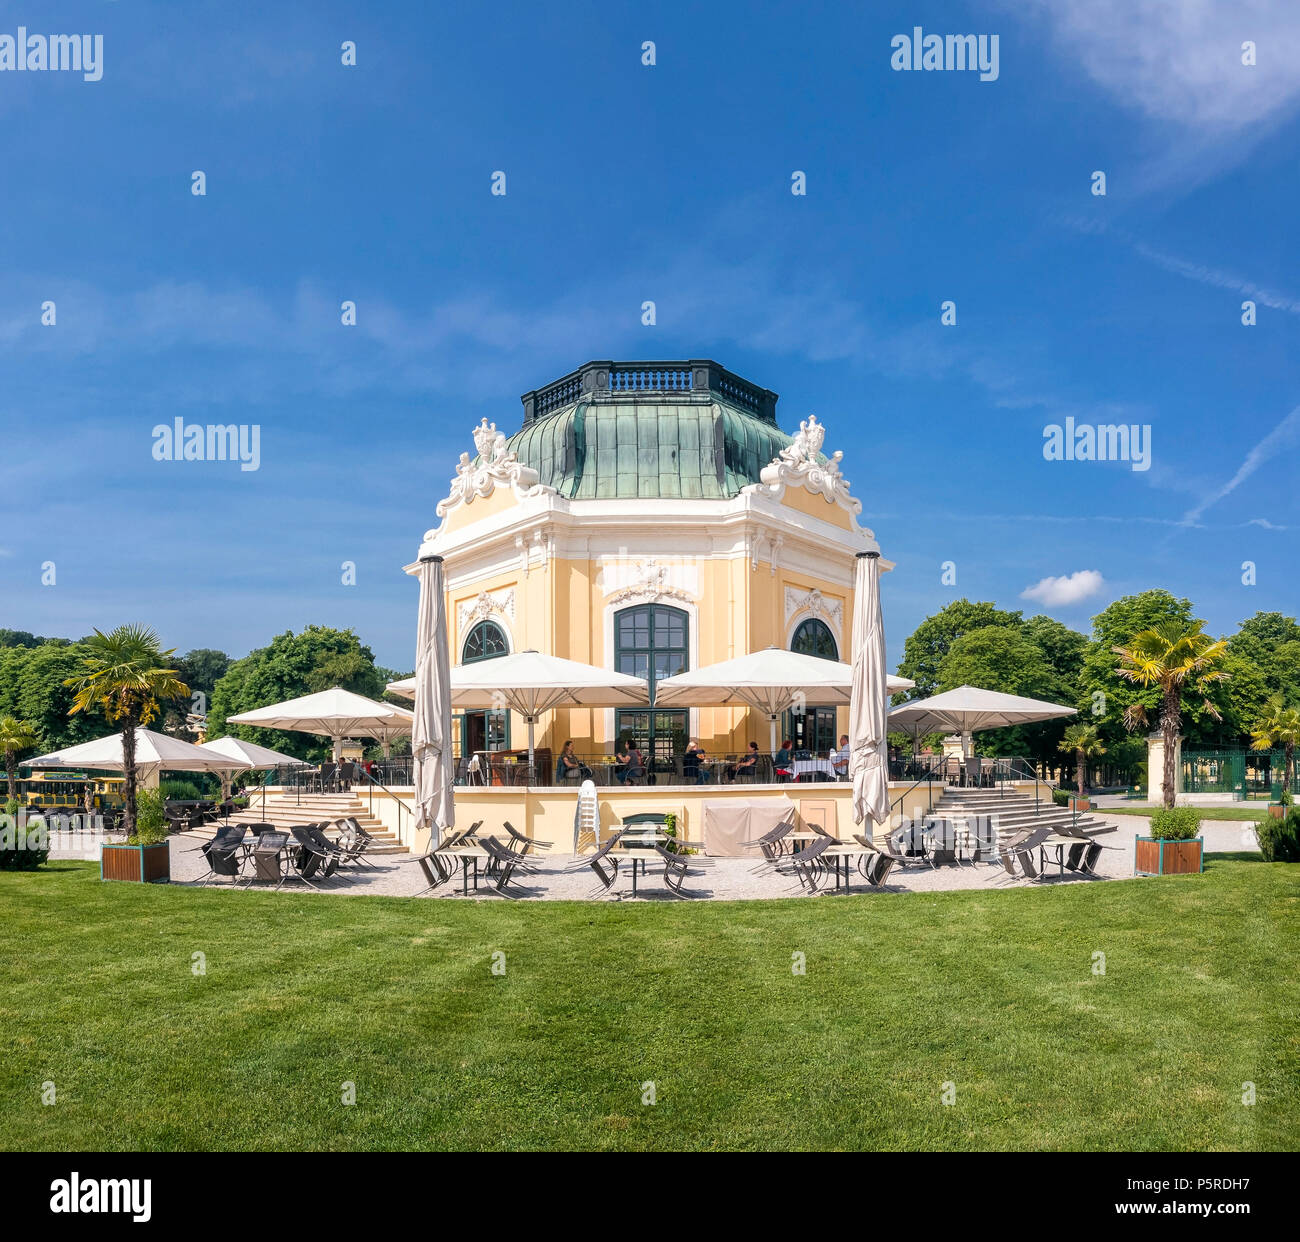 The Cafe Restaurant Kaiserpavillon was built in 1759, is located in the heart of the Tiergarten Schönbrunn and still o Stock Photo